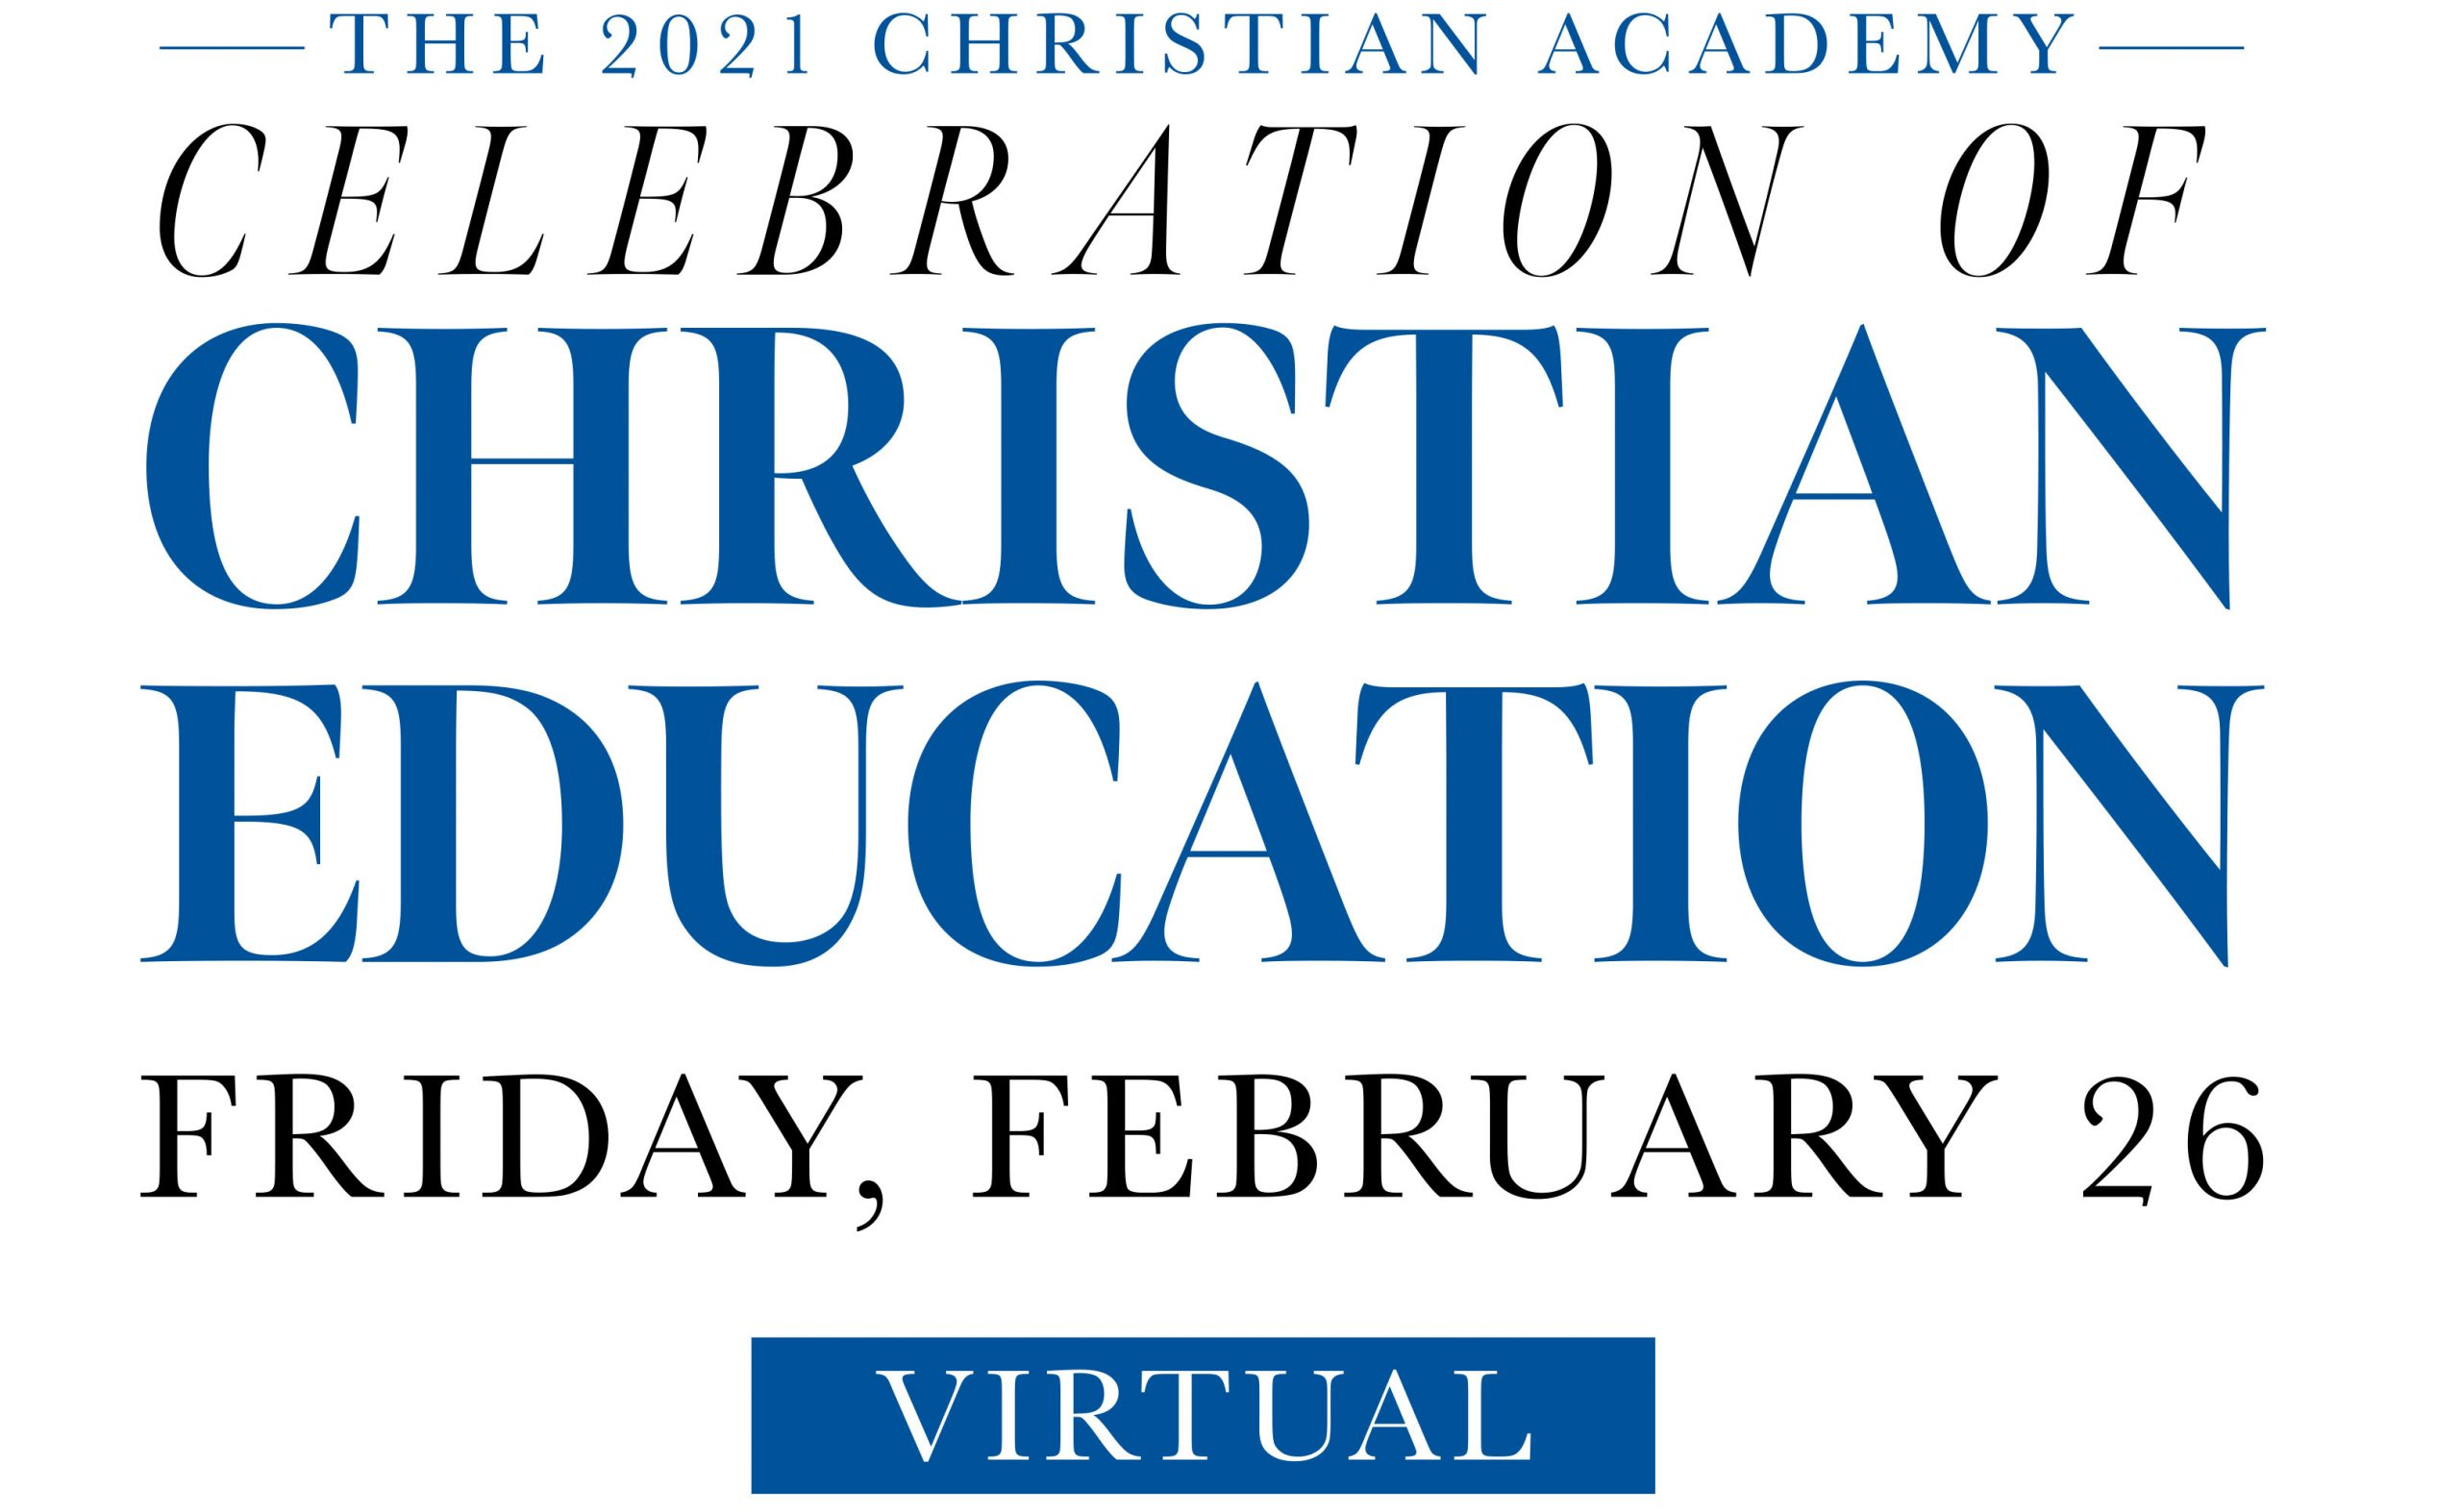 Christian Academy School System | Support | Celebration of Christian Education | Friday, February 26, 2020 | Virtual